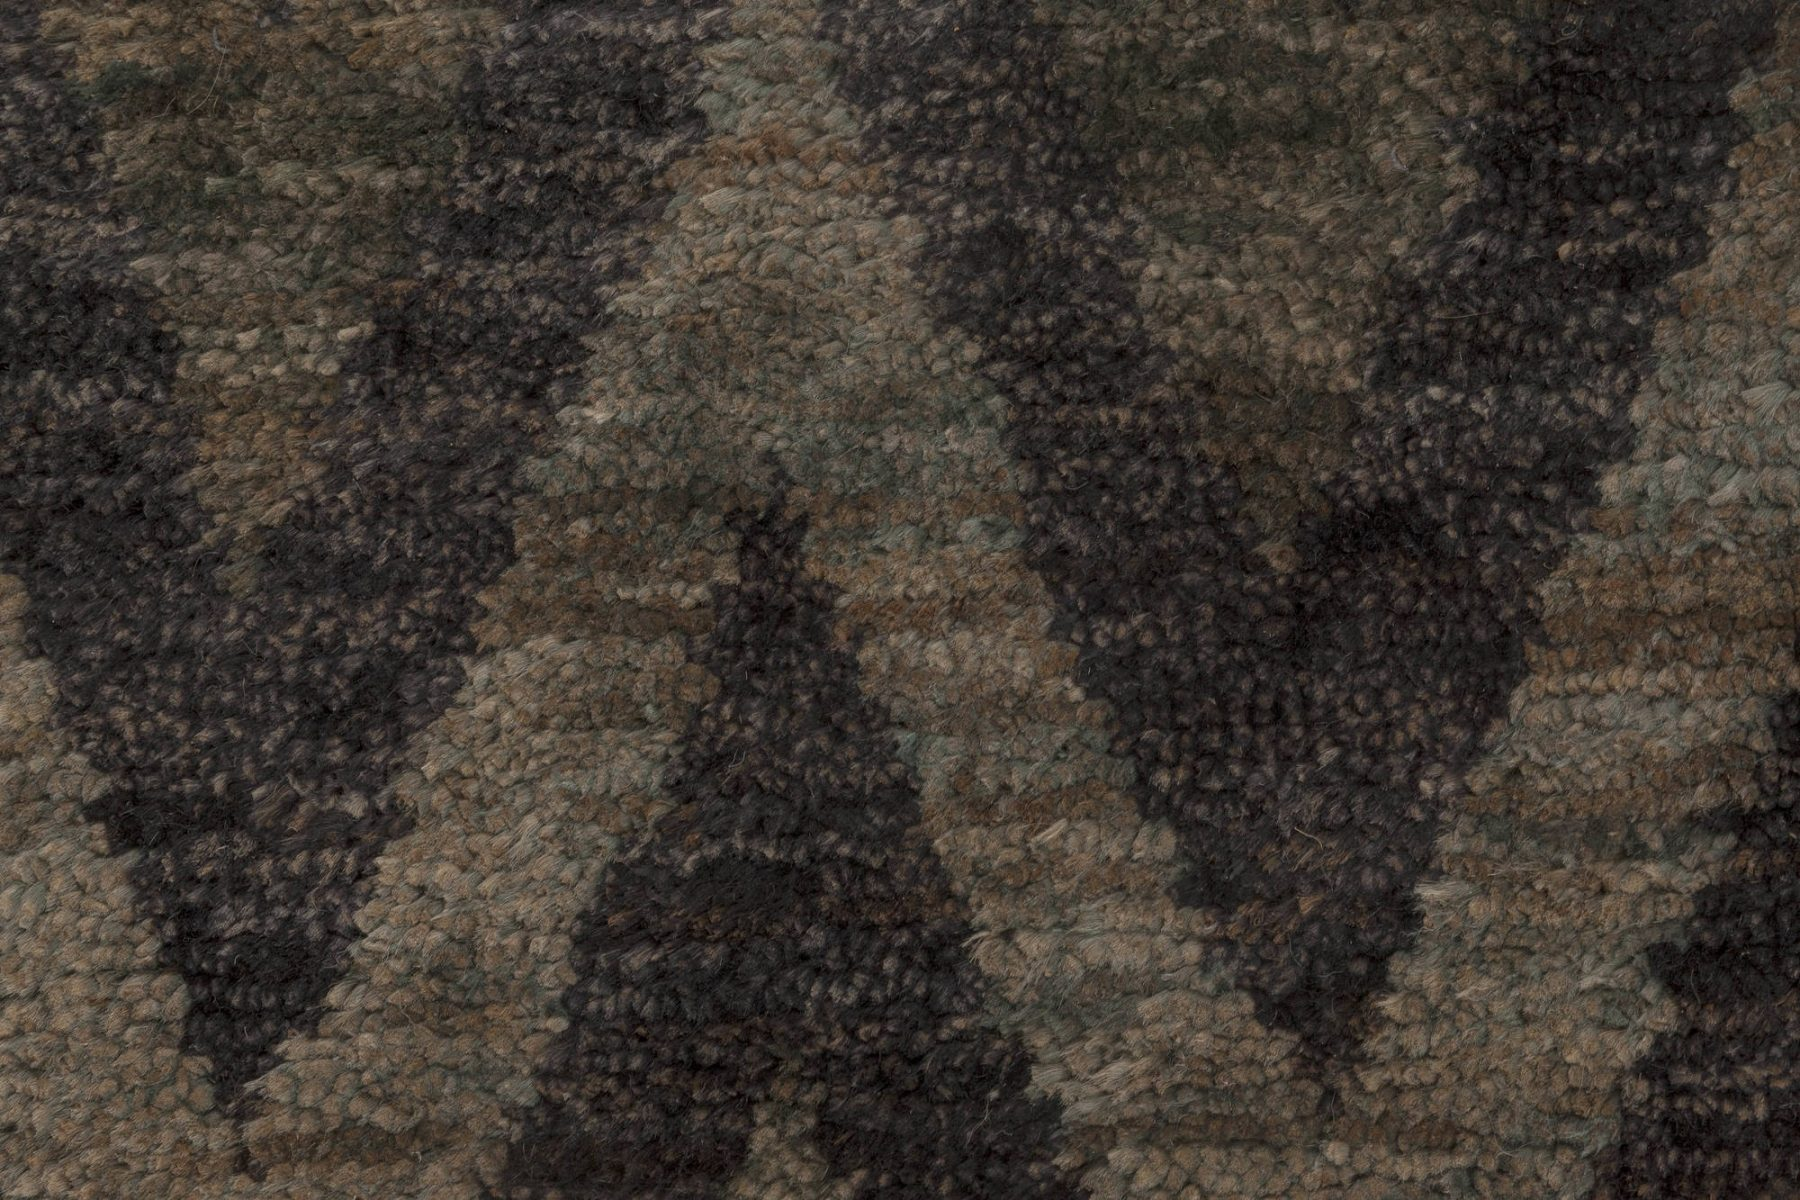 Contemporary Geometric Gray and Black Zigzag Hand Knotted Hemp Rug N11802